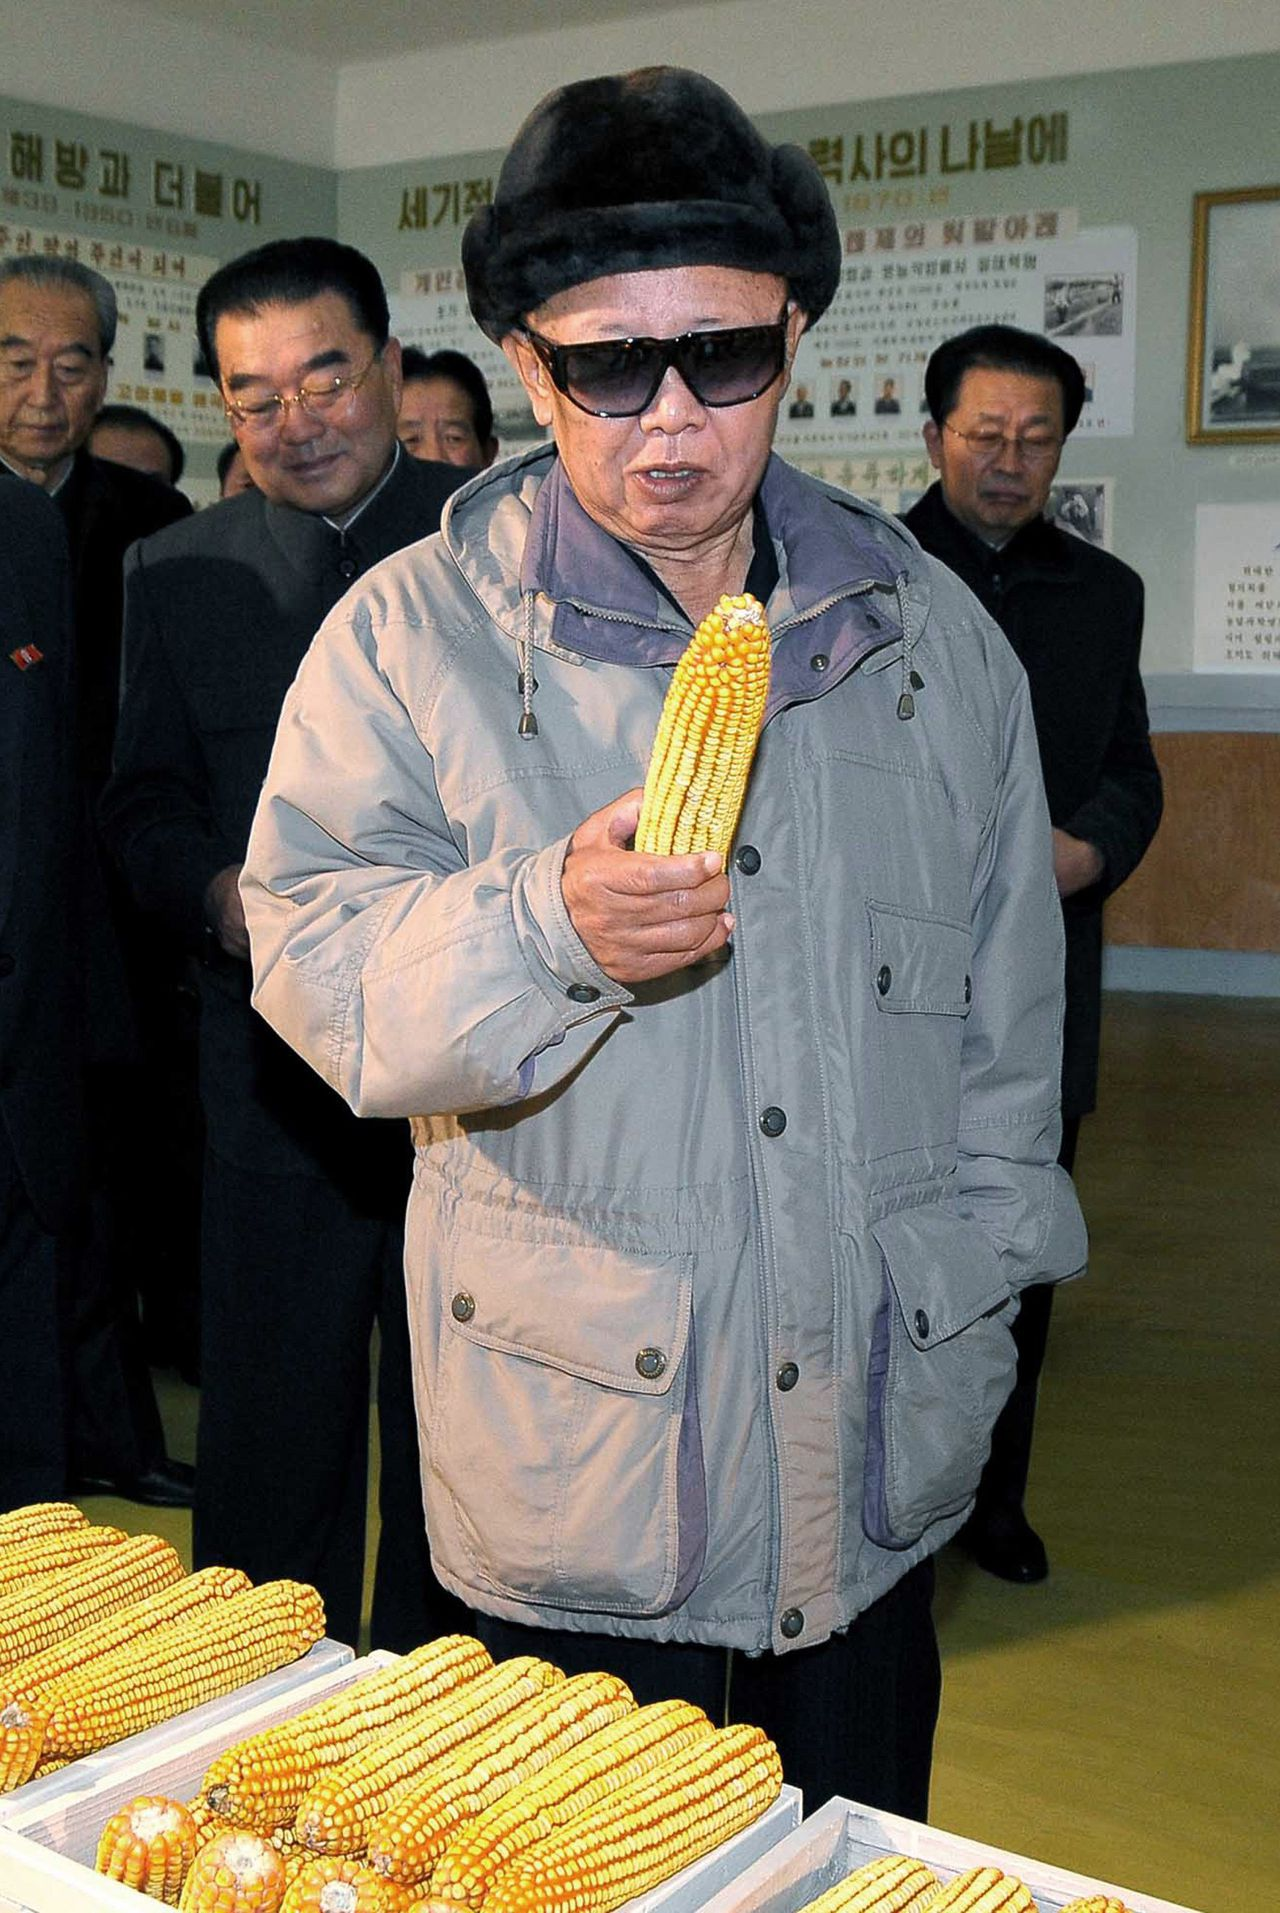 "North Korean leader Kim Jong-il holds a piece of corn during his visit to Dongbong collective farm in North Korea, in this undated picture released on November 8, 2009 by North Korea's official news agency KCNA. North Korean leader Kim Jong-il died on a train trip, state television reported on December 19, 2011 sparking immediate concern over who is in control of the reclusive state and its nuclear programme. A tearful announcer dressed in black said the 69-year old had died on December 17, 2011 of physical and mental over-work on his way to give ""field guidance"". REUTERS/KCNA/Files (NORTH KOREA - Tags: POLITICS OBITUARY) . QUALITY FROM SOURCE. NO THIRD PARTY SALES. NOT FOR USE BY REUTERS THIRD PARTY DISTRIBUTORS"